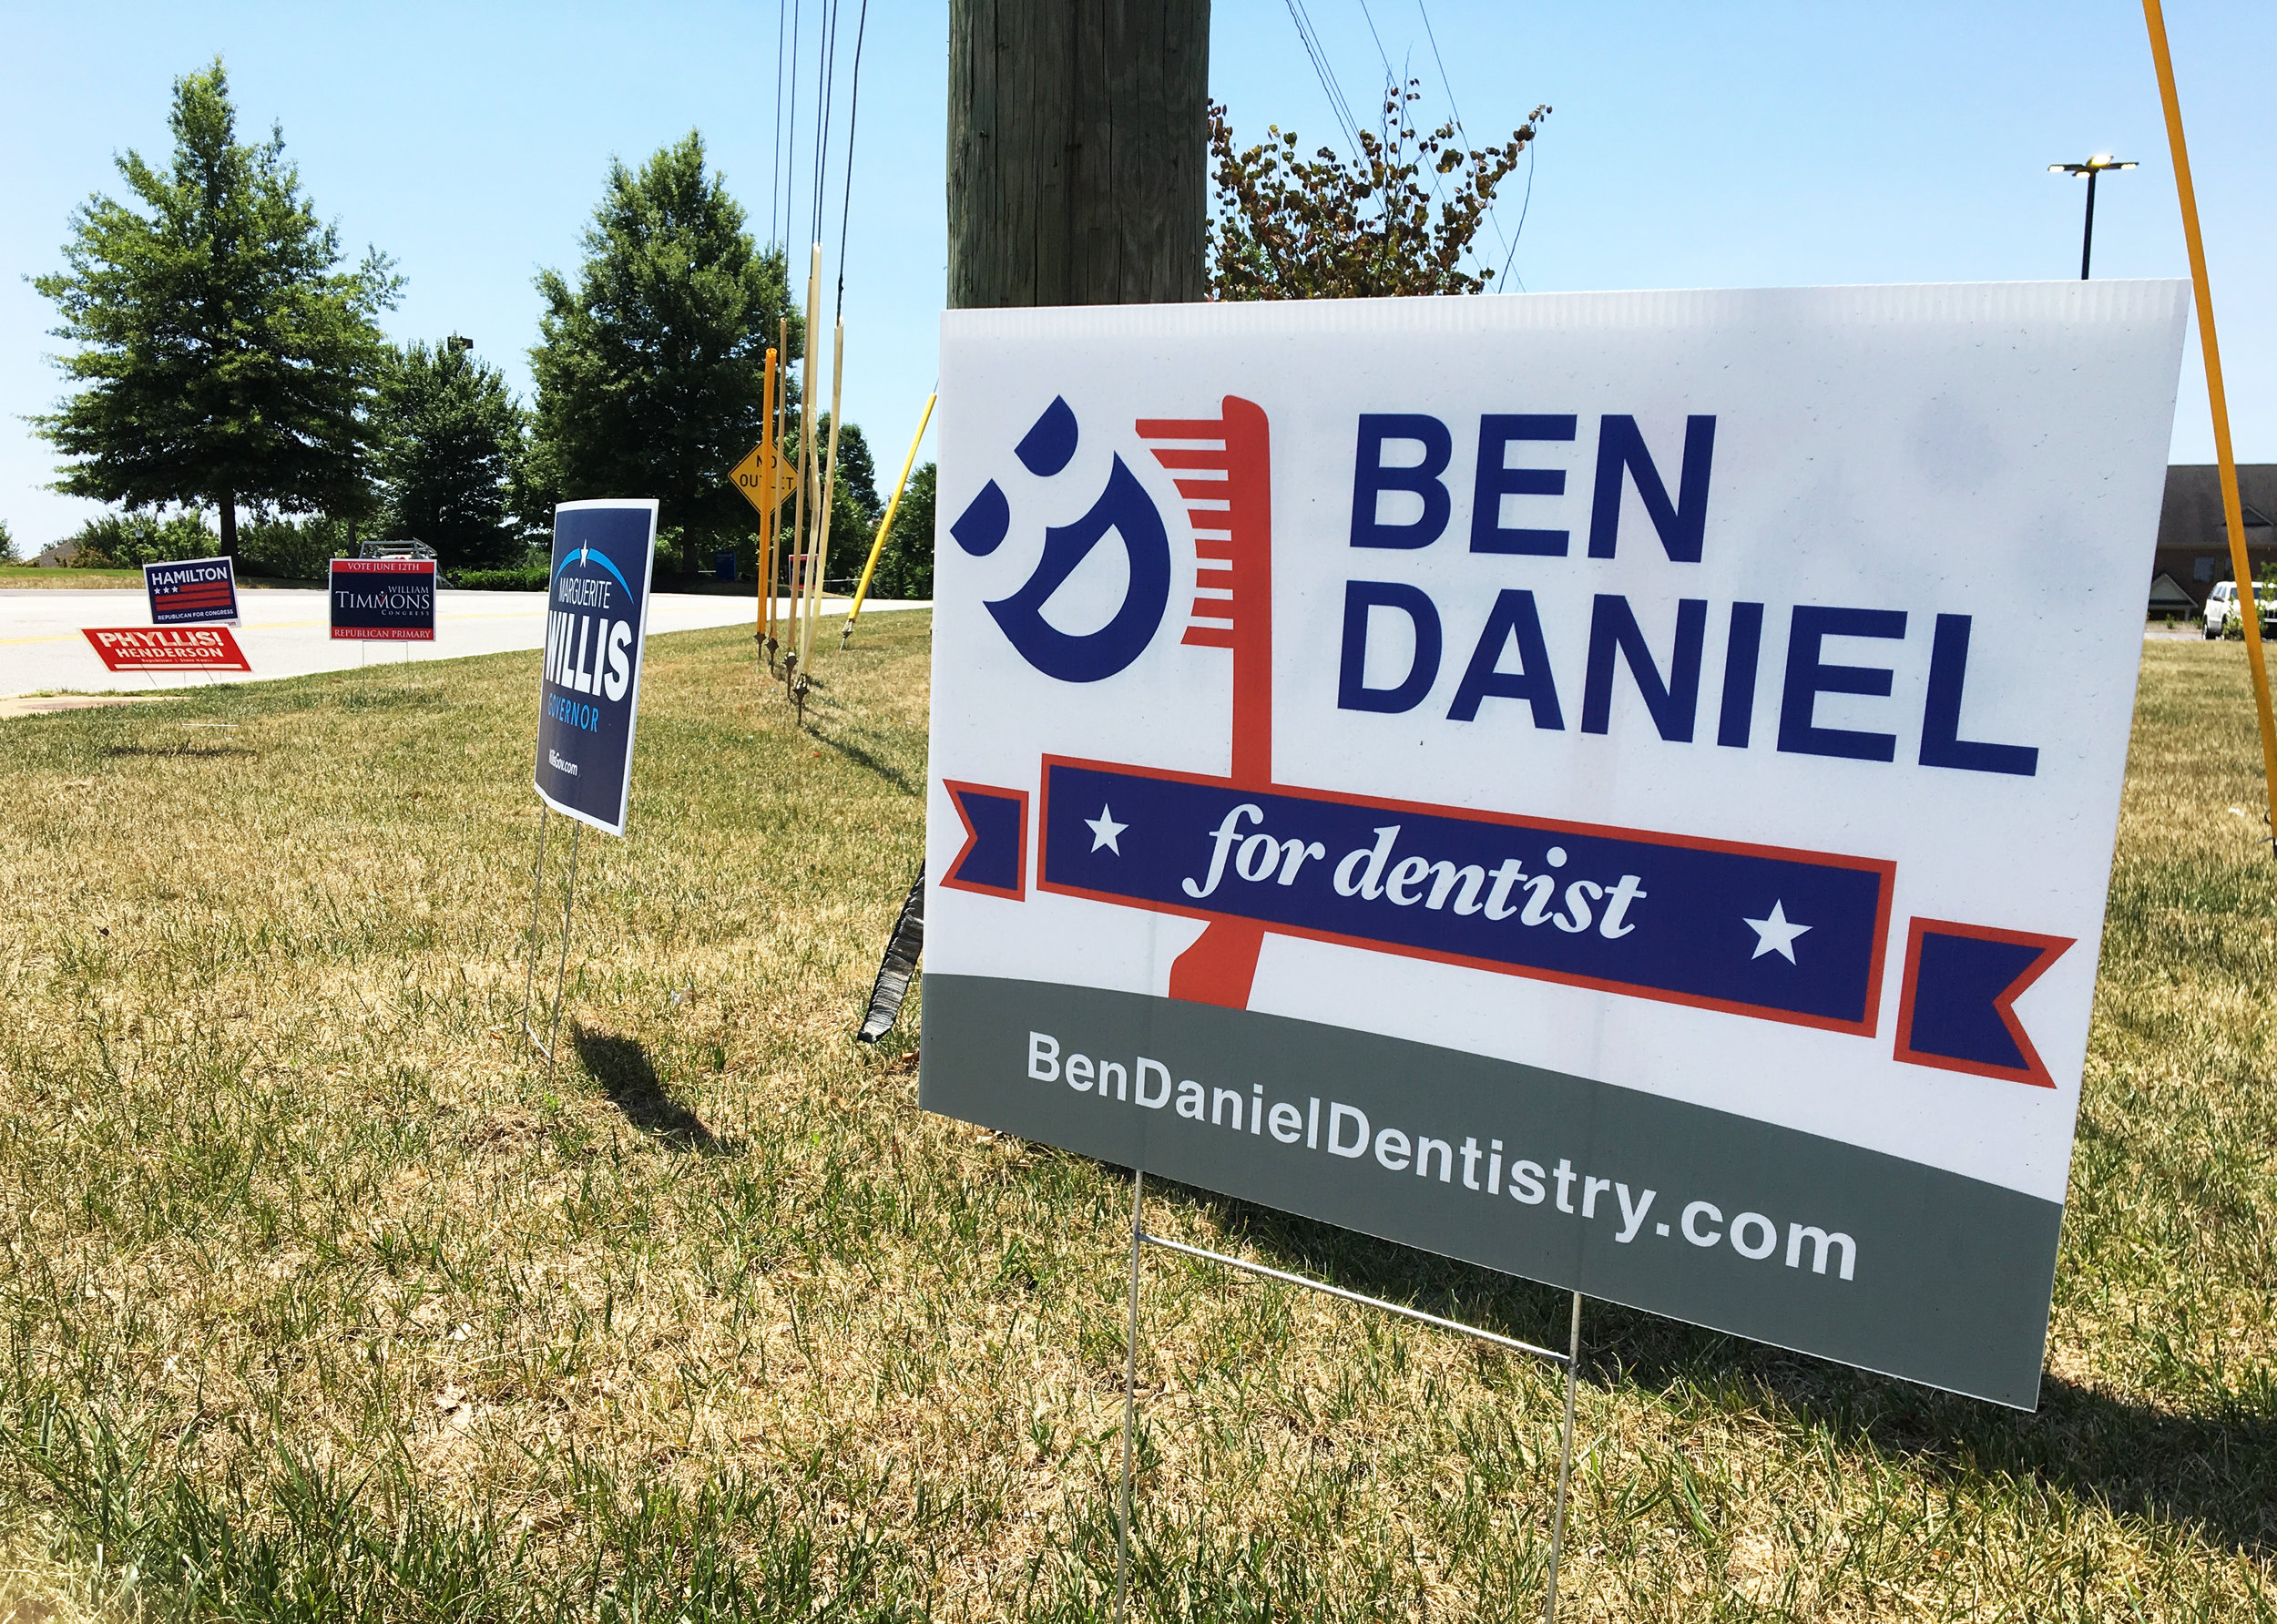 vote-guerilla-marketing-Ben-Daniel-for-dentist-3.jpg